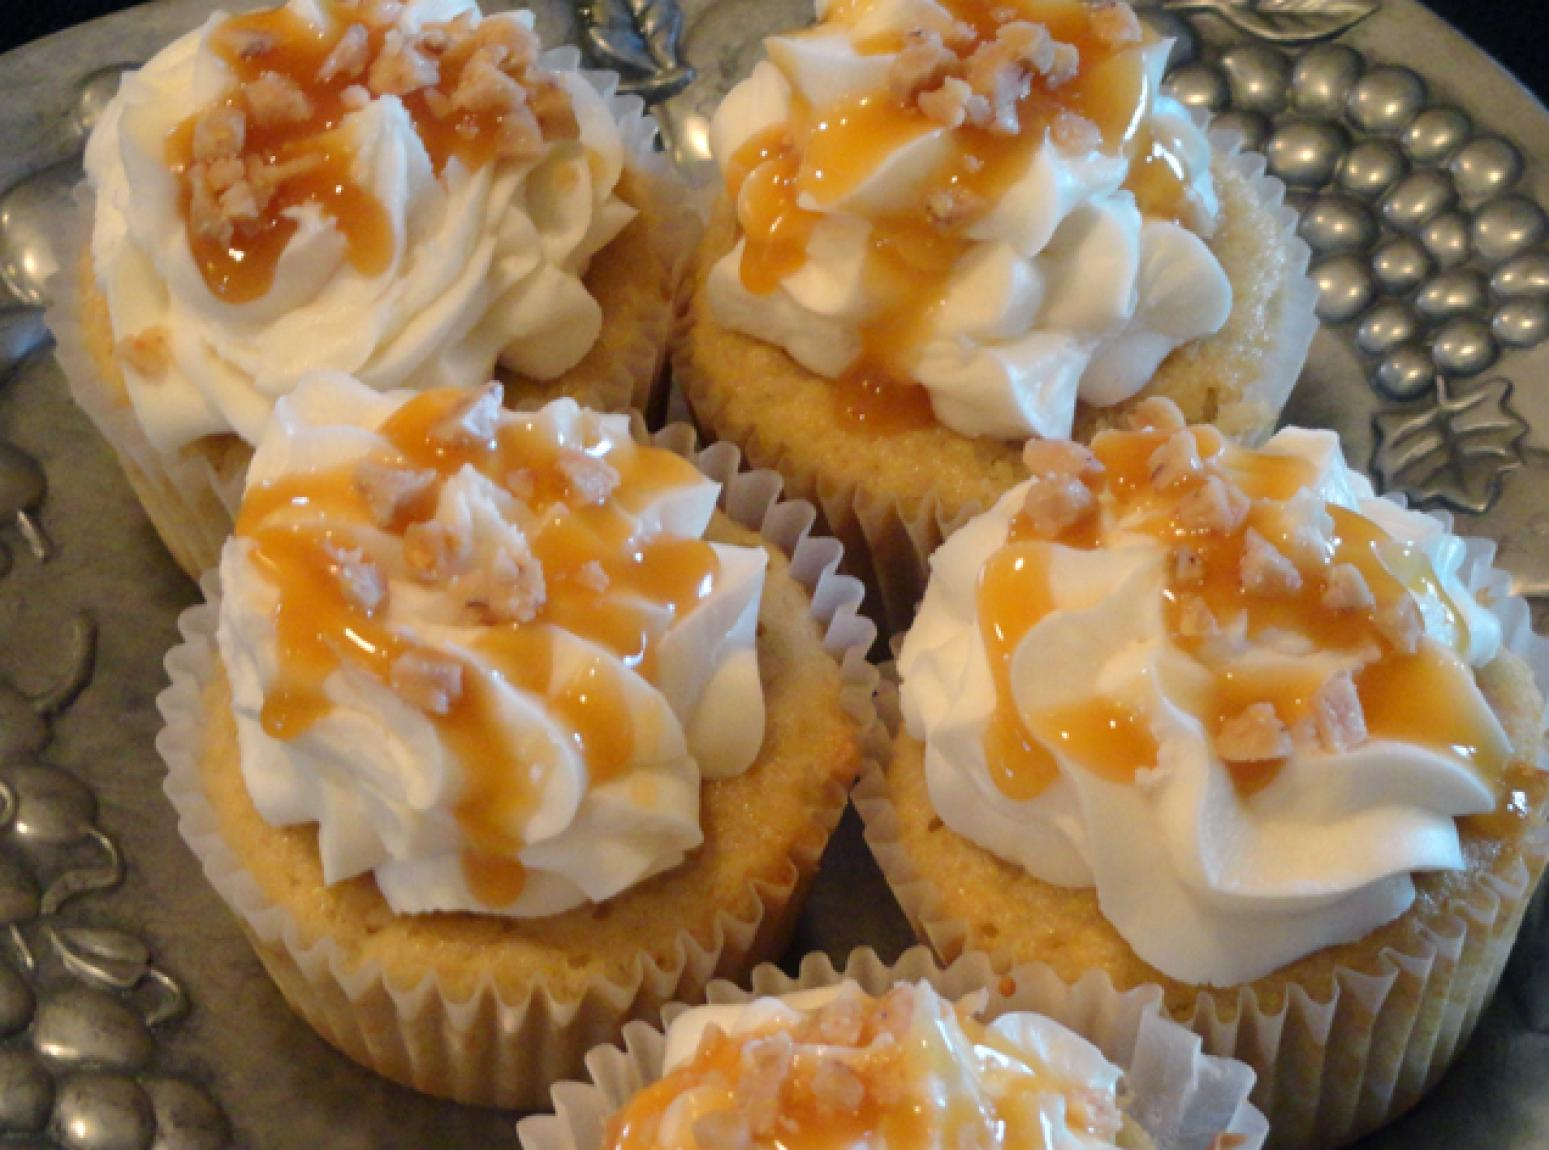 Toffee Crunch Cupcakes Recipe